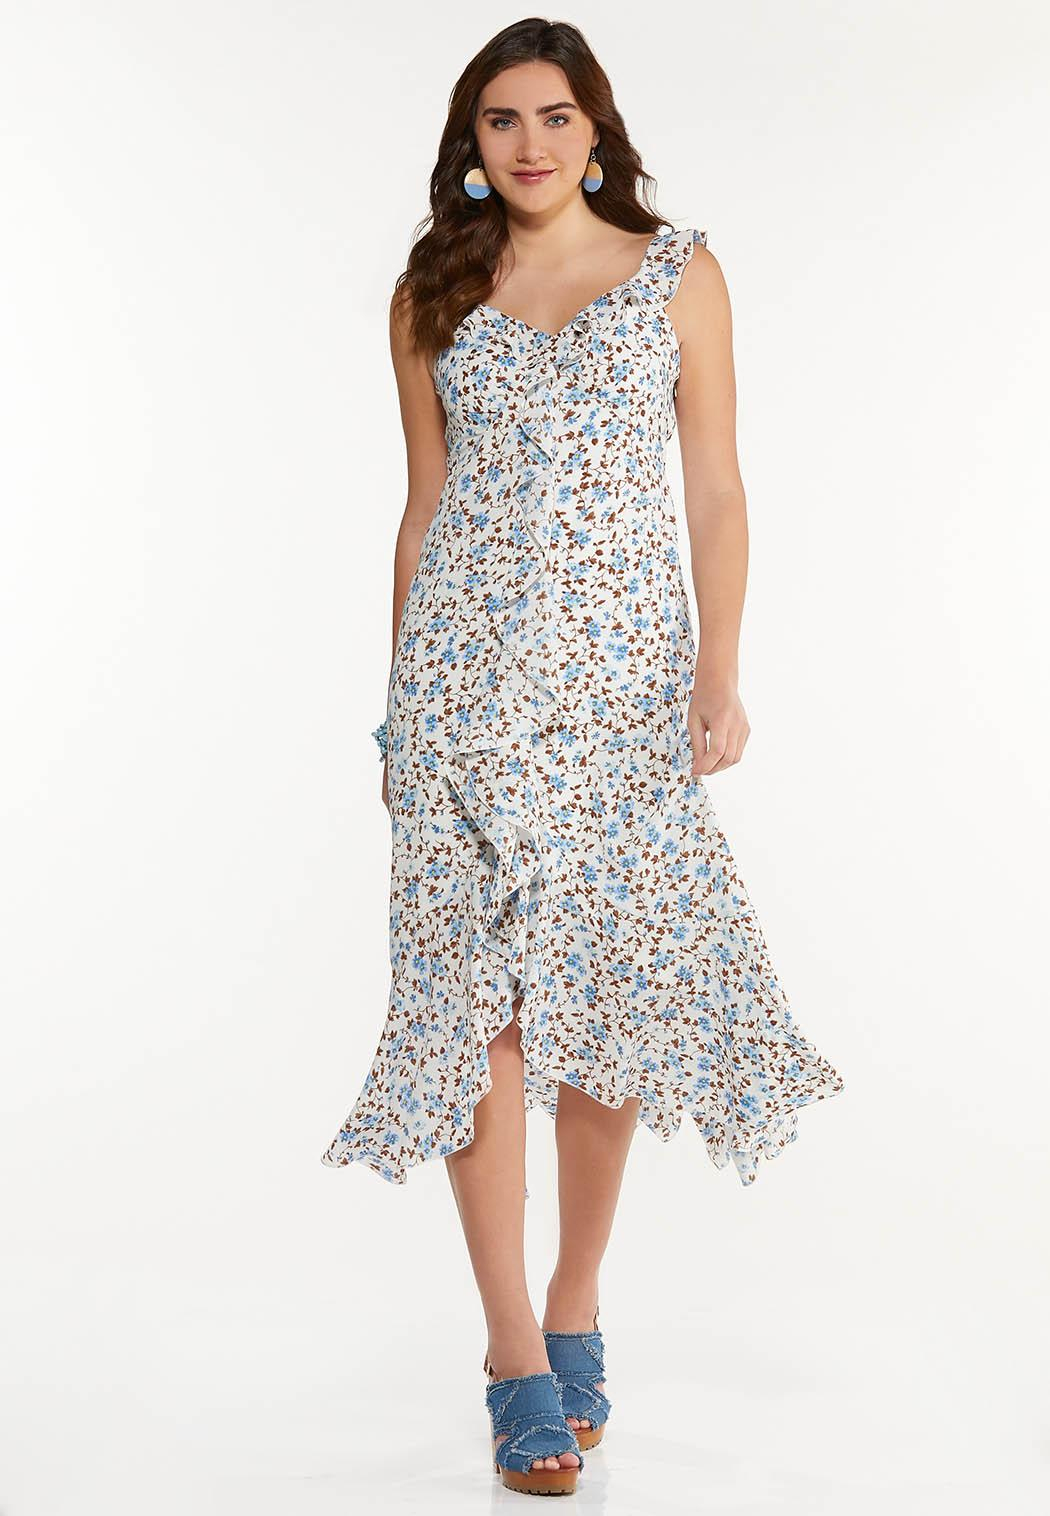 Ruffle Floral High-Low Dress